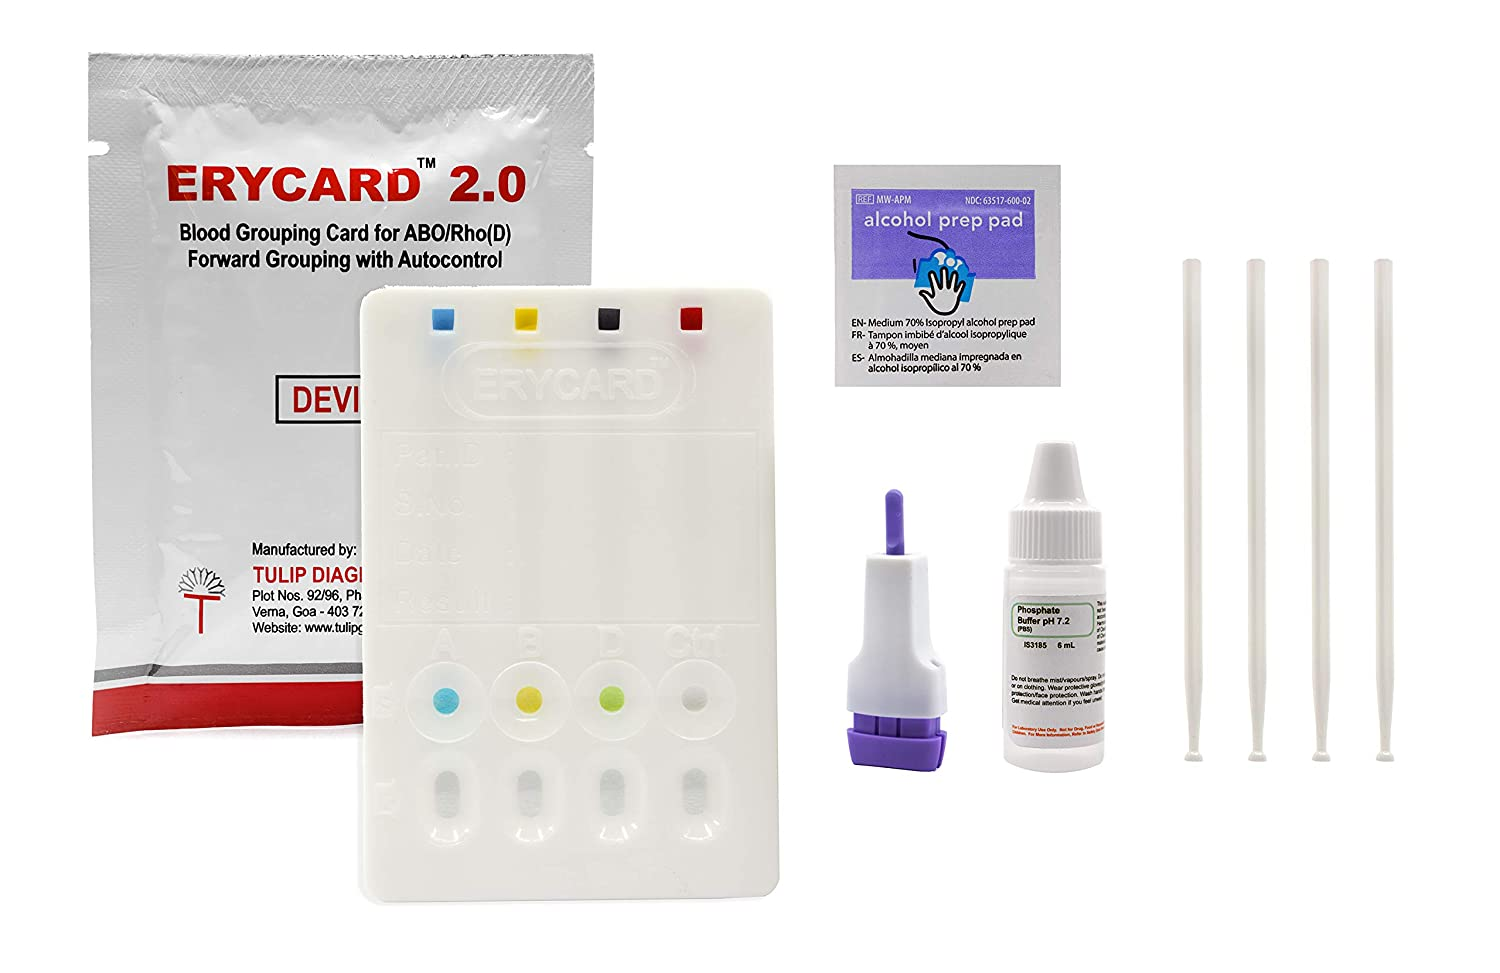 Premium Erycard ABO/RH Blood Typing Card - for Educational Use - Laboratory Activity (NOT for Medical/Clinical Use) - Enough Material for 1 Test - Innovating Science